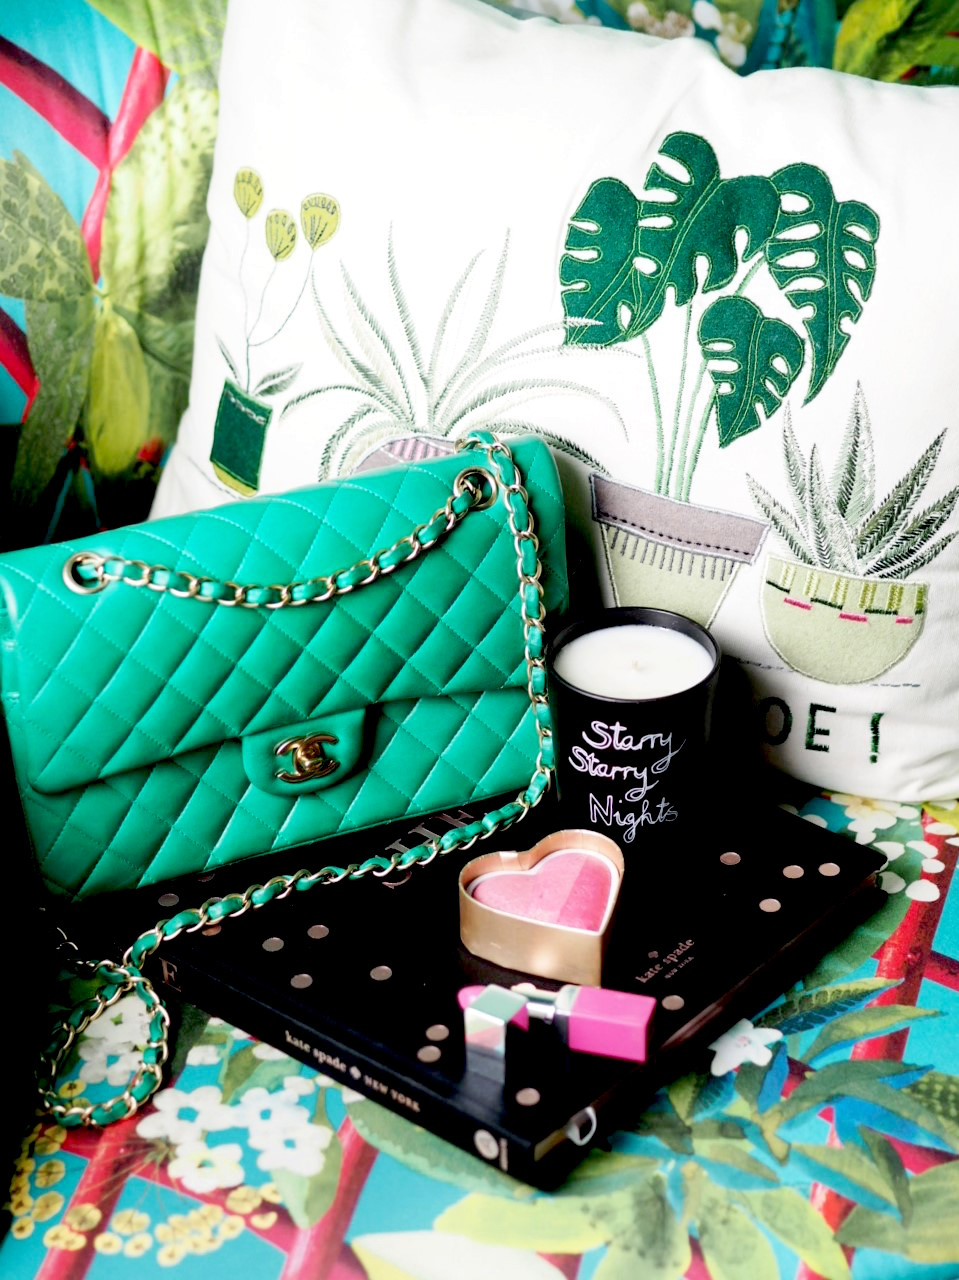 Chanel Handbag green bella frued candle starry starry night candle next cushion you had me at aloe homeware